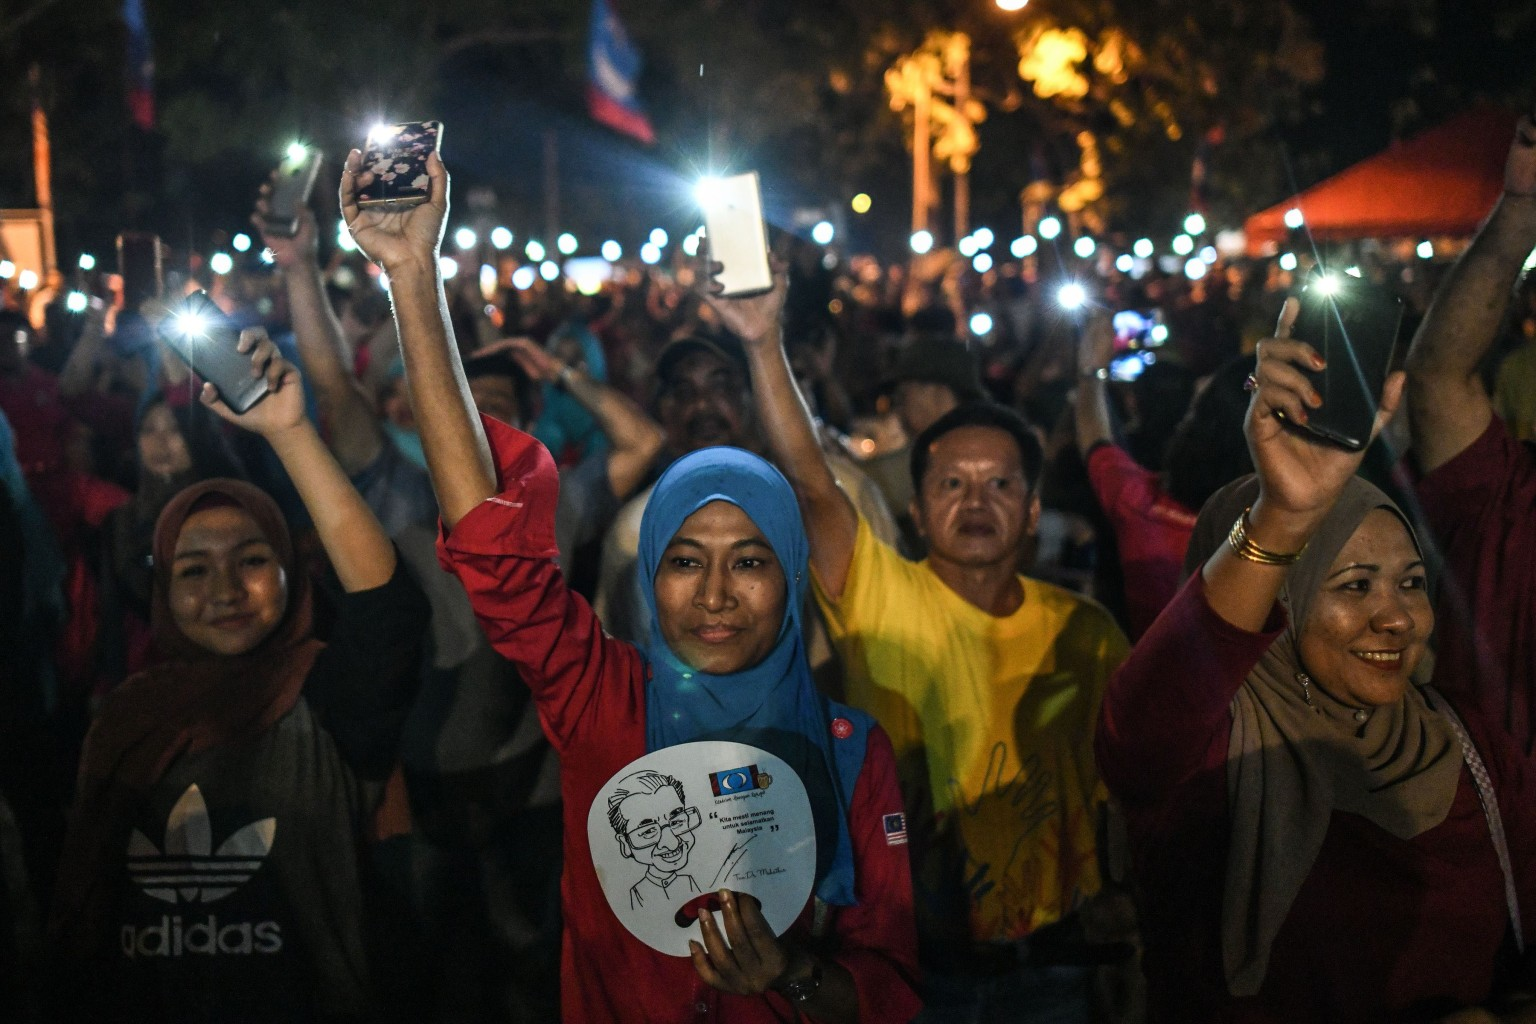 Supporters turn on flashlights on their phones in celebration April 15 after former Malaysian Prime Minister Mahathir Mohamad was selected as Langkawi parliamentary constituency candidate during a rally ahead of the general election. MOHD RASFAN/AFP/Getty Images